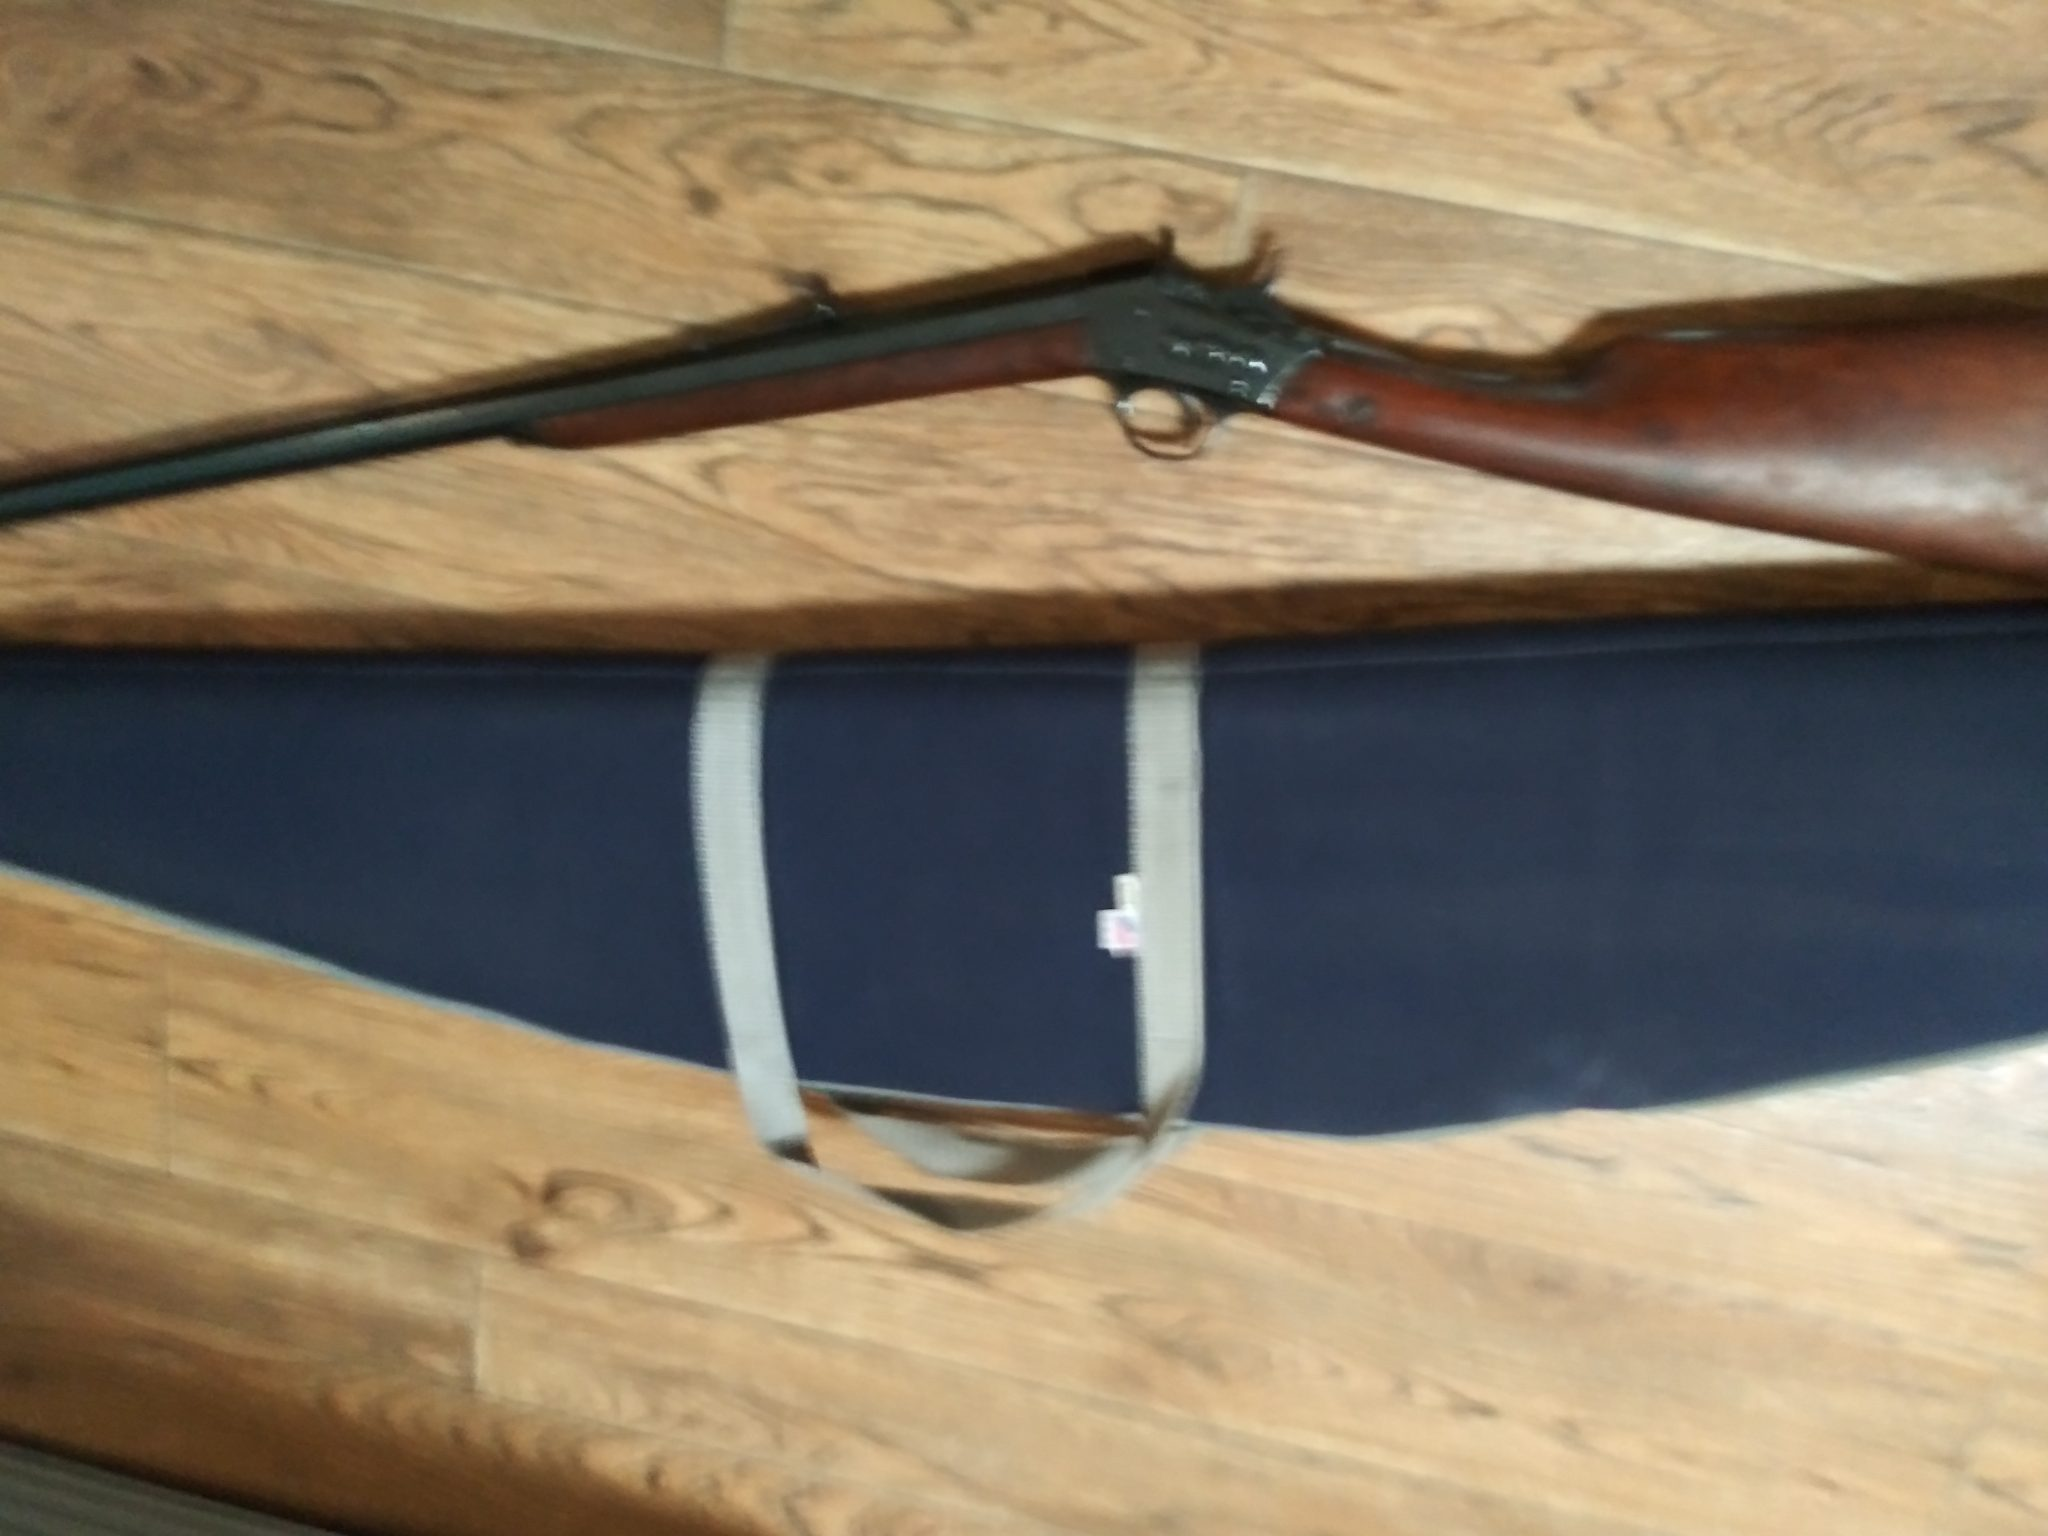 1873 Remington Rifle 32 cal. with case Serial 10293. Excellent Condition. Very few scratches. Been t